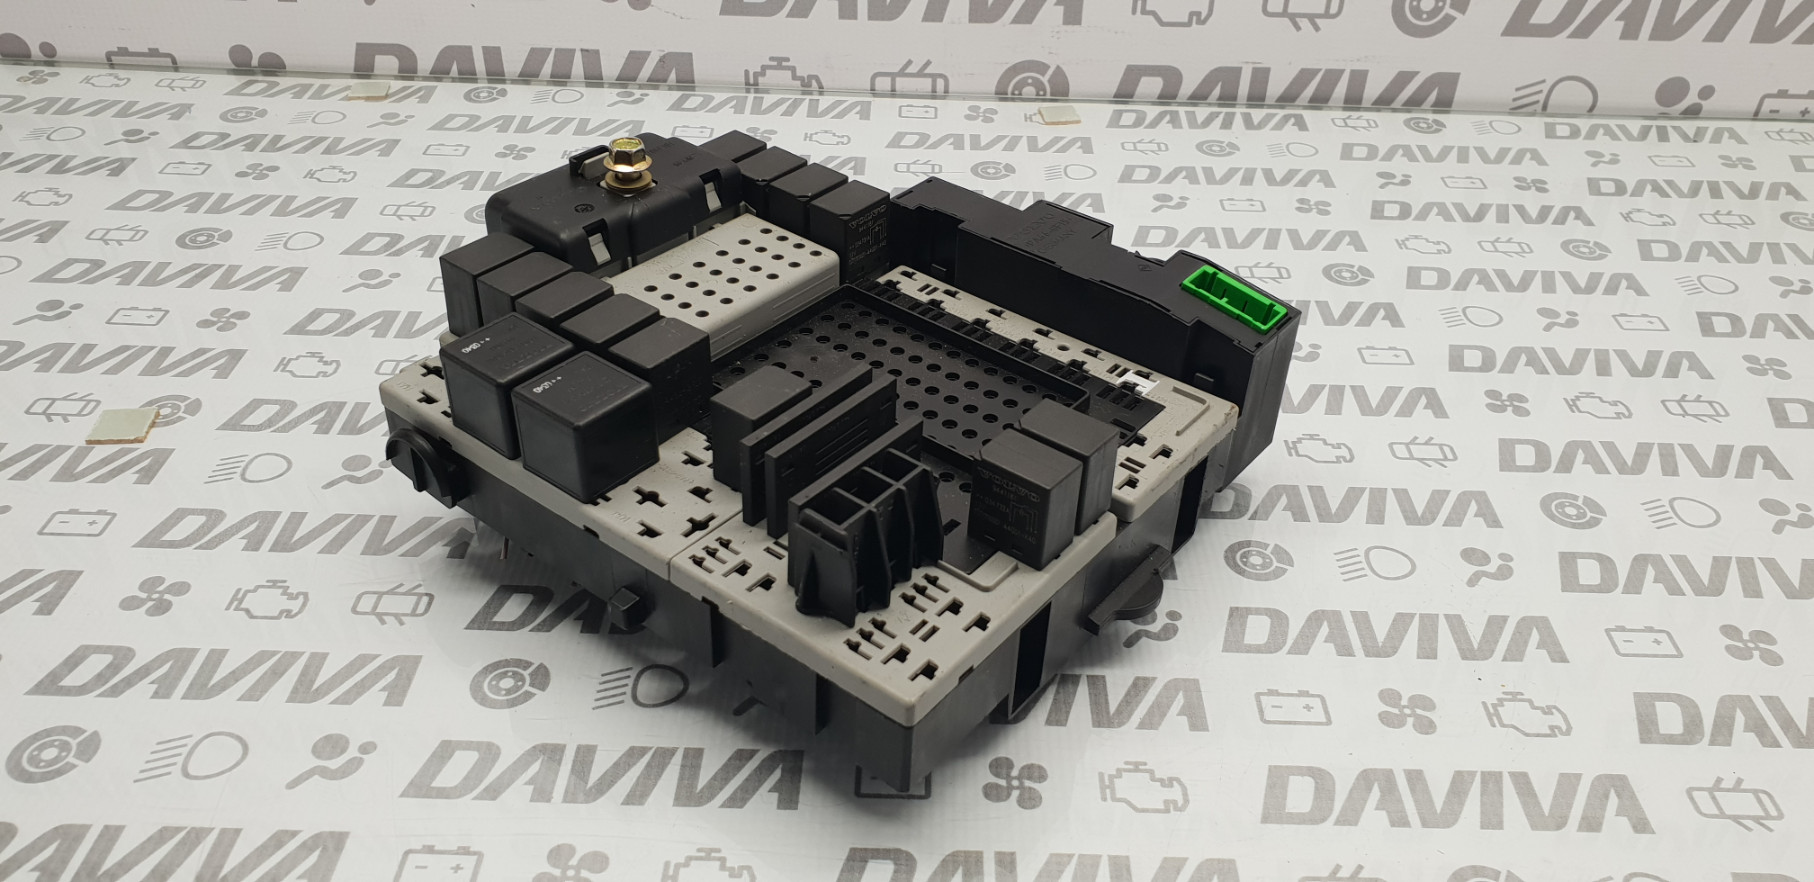 hight resolution of details about 2004 volvo v70 xc70 2 4 diesel engine fuse relay fusebox module unit 30682664